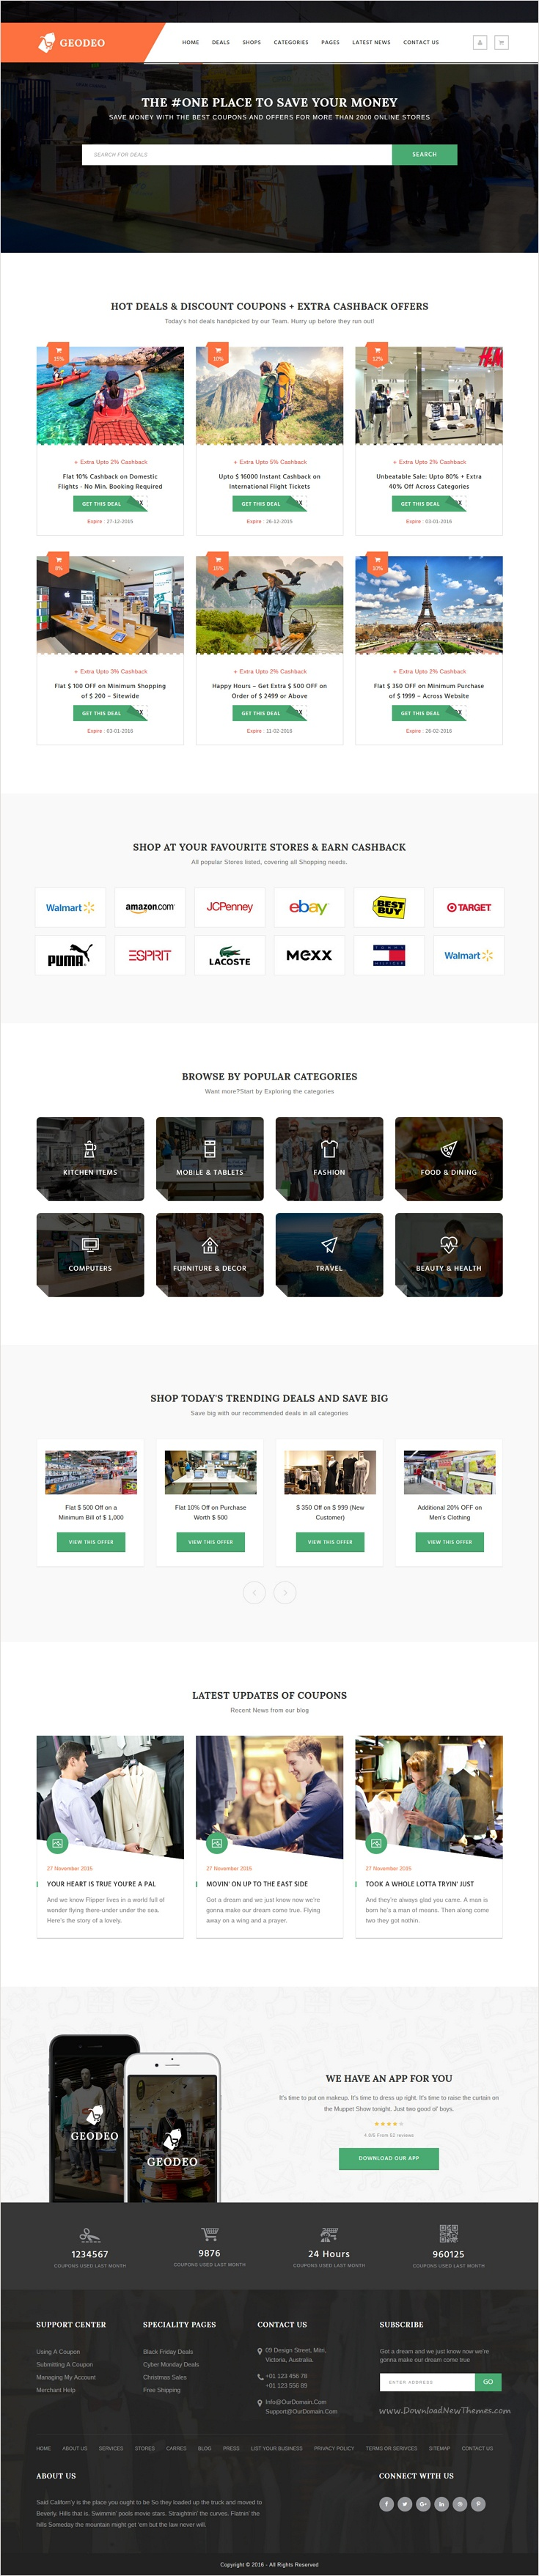 Geodeo - Coupon & Deals HTML Template | Api key